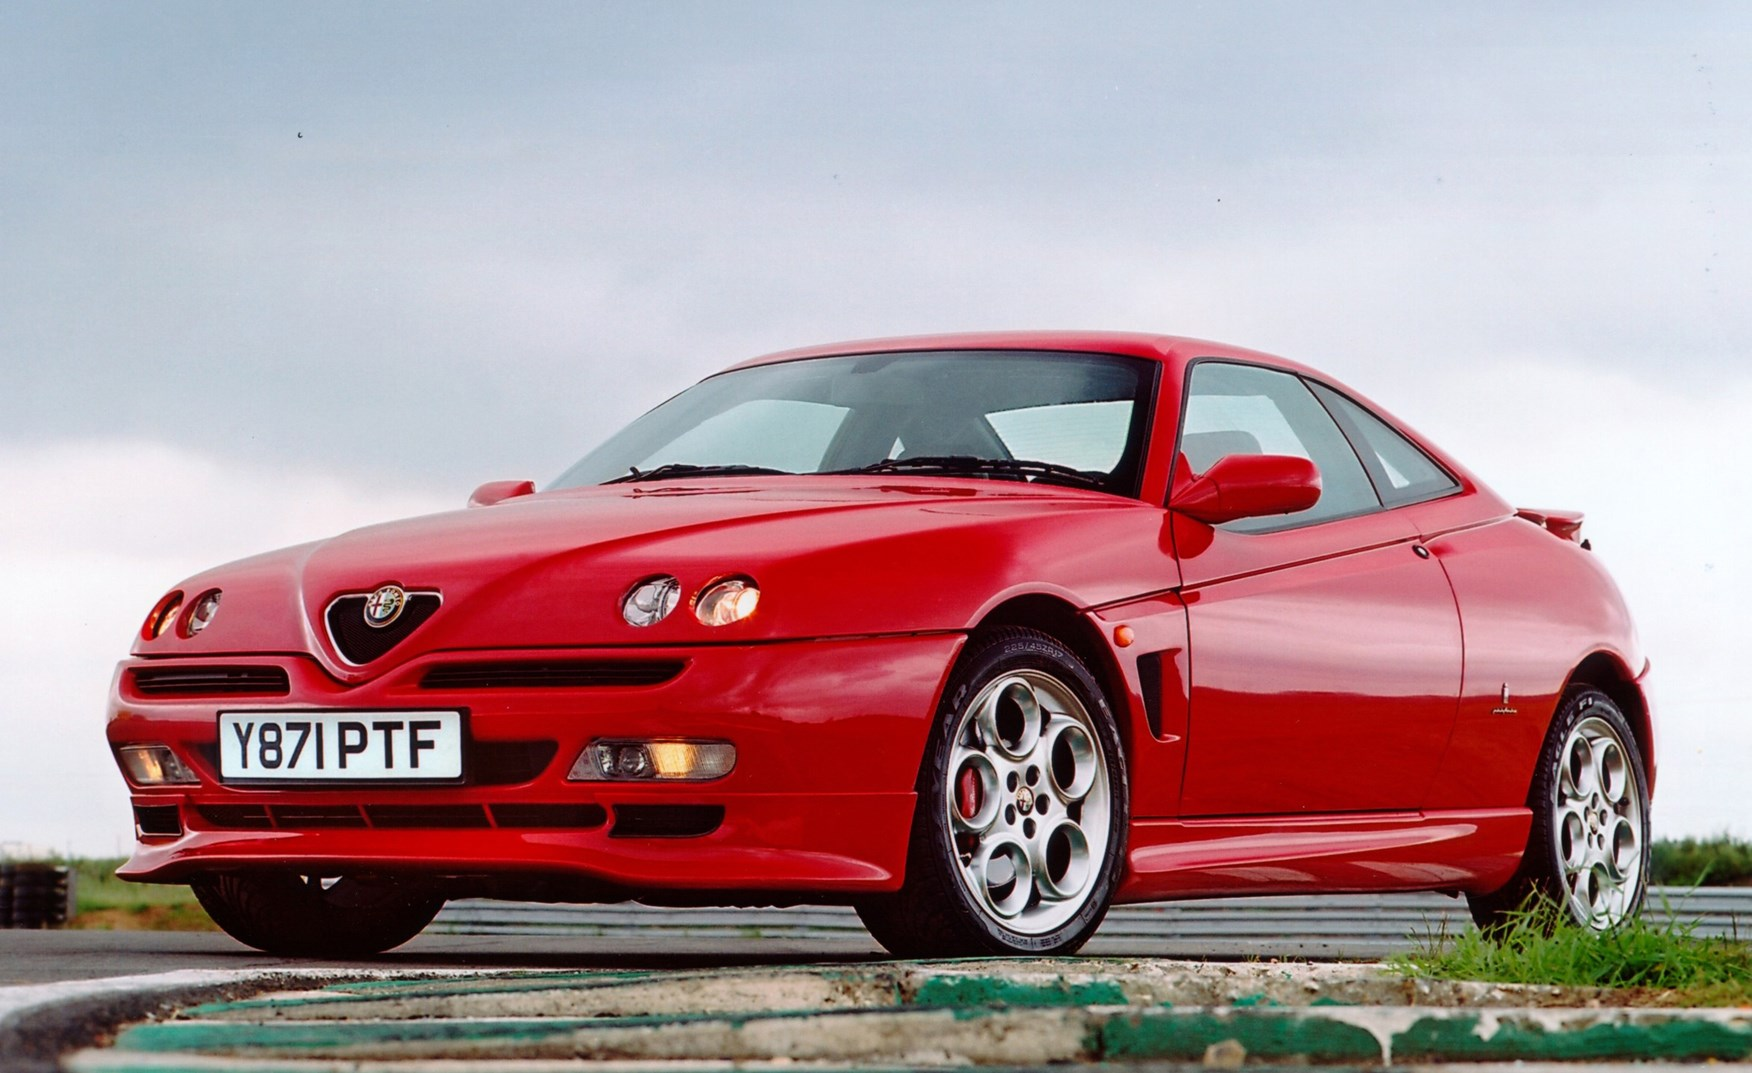 alfa romeo gtv coupe review 1996 2004 parkers. Black Bedroom Furniture Sets. Home Design Ideas